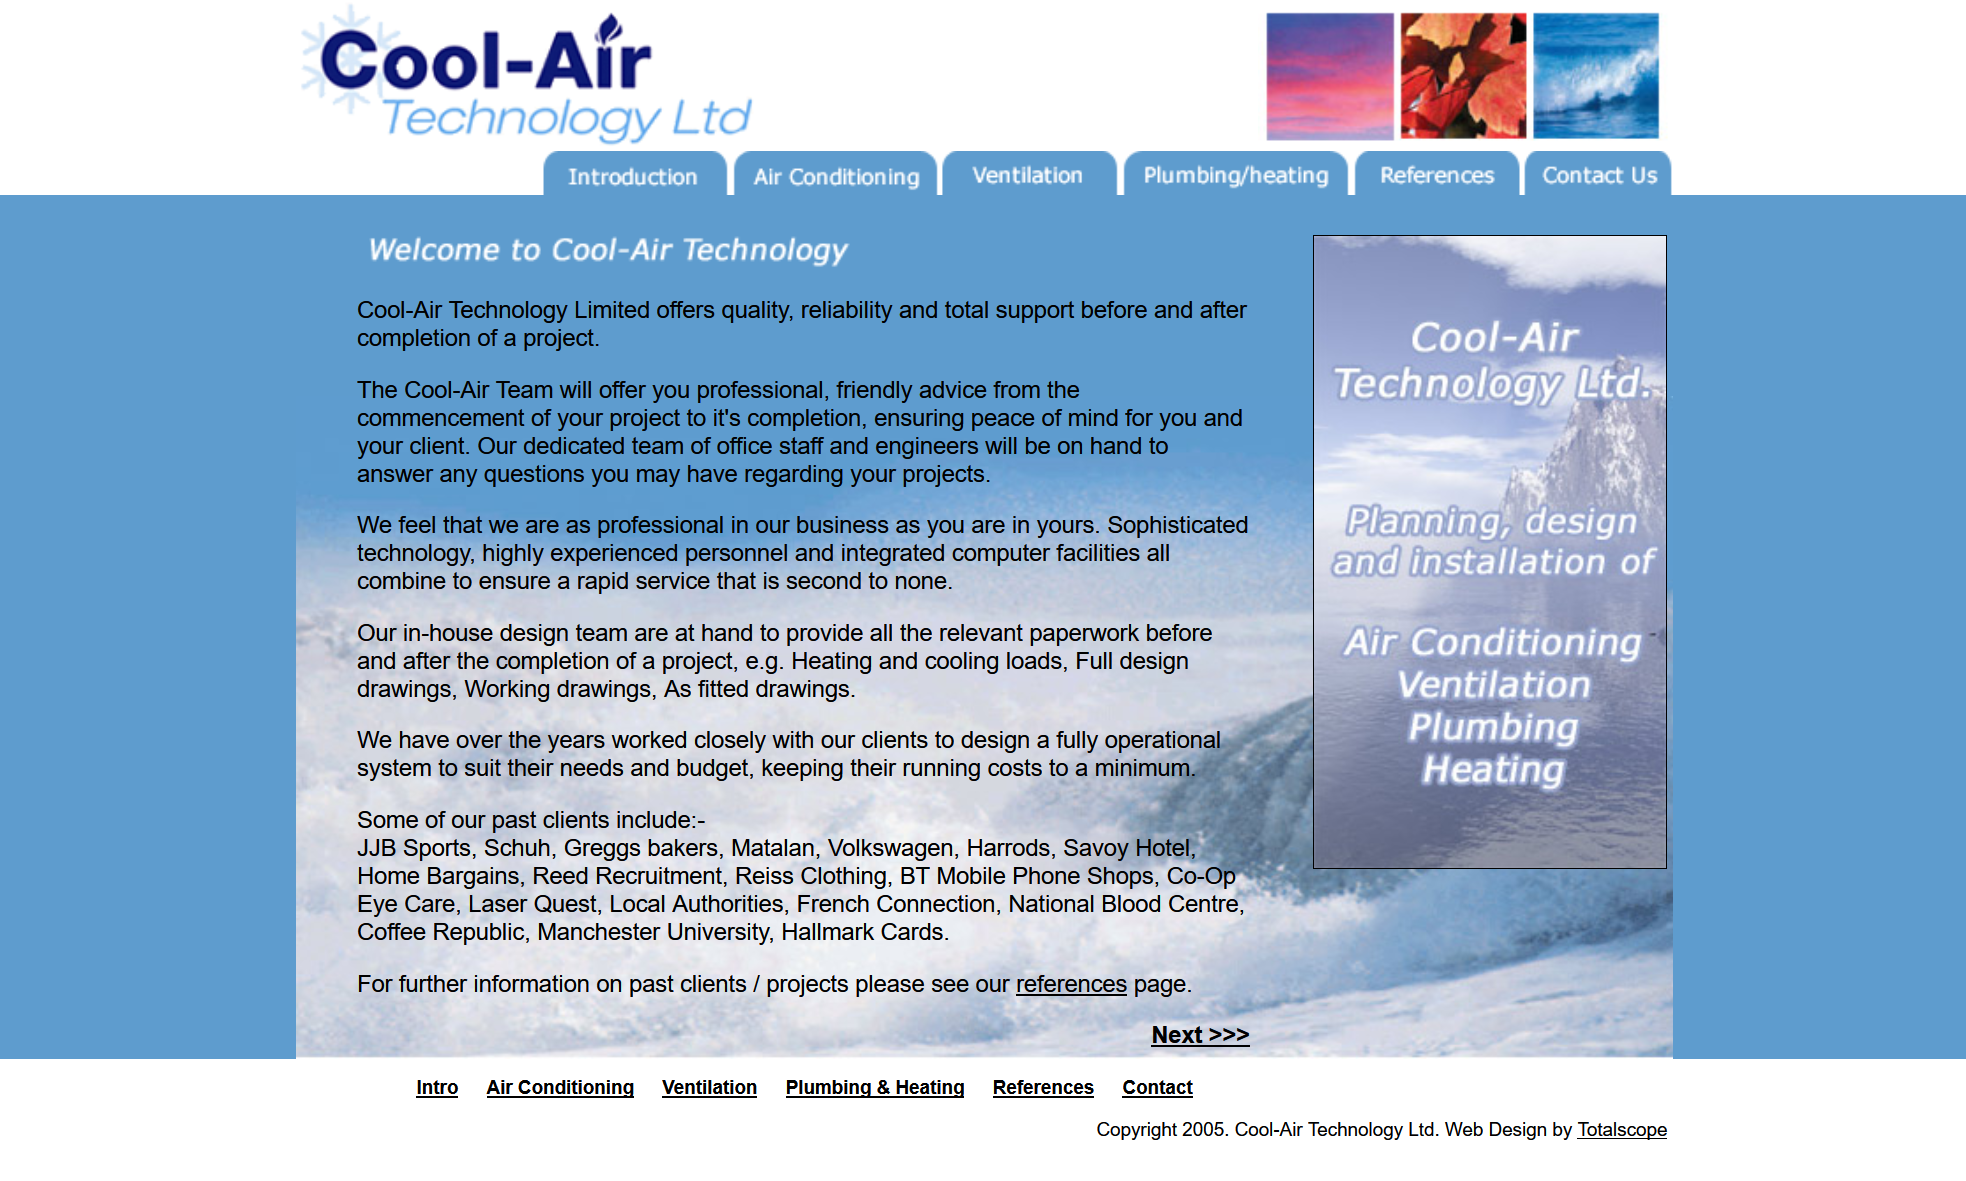 Cool-Air Technology Ltd